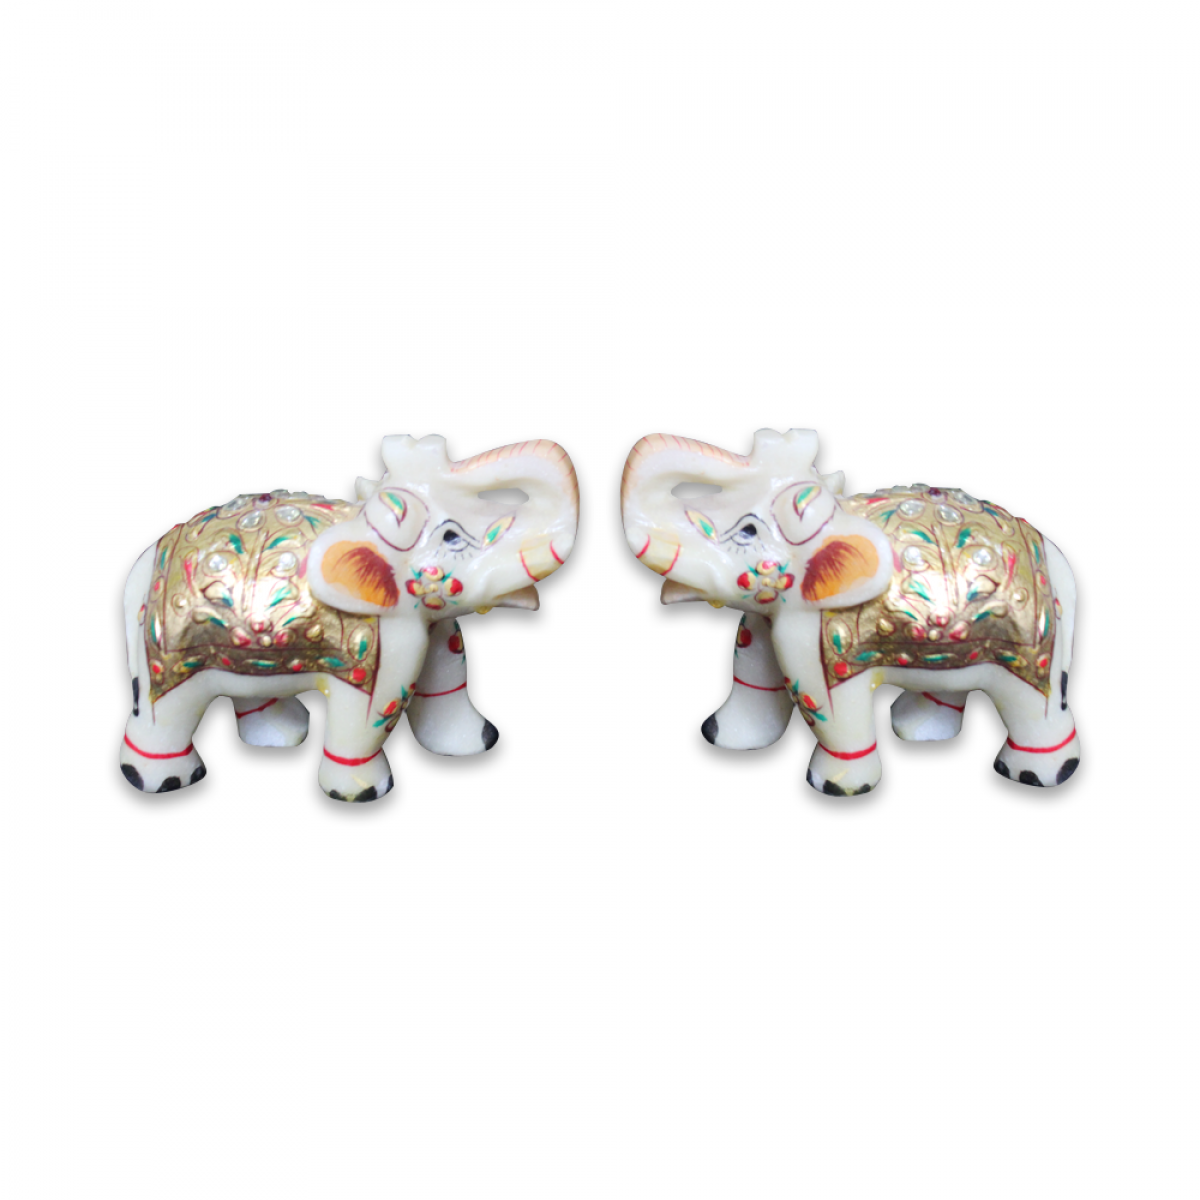 Marble Royal Elephant Pair With Meena Work High resolution a3 elephants png. indebazar